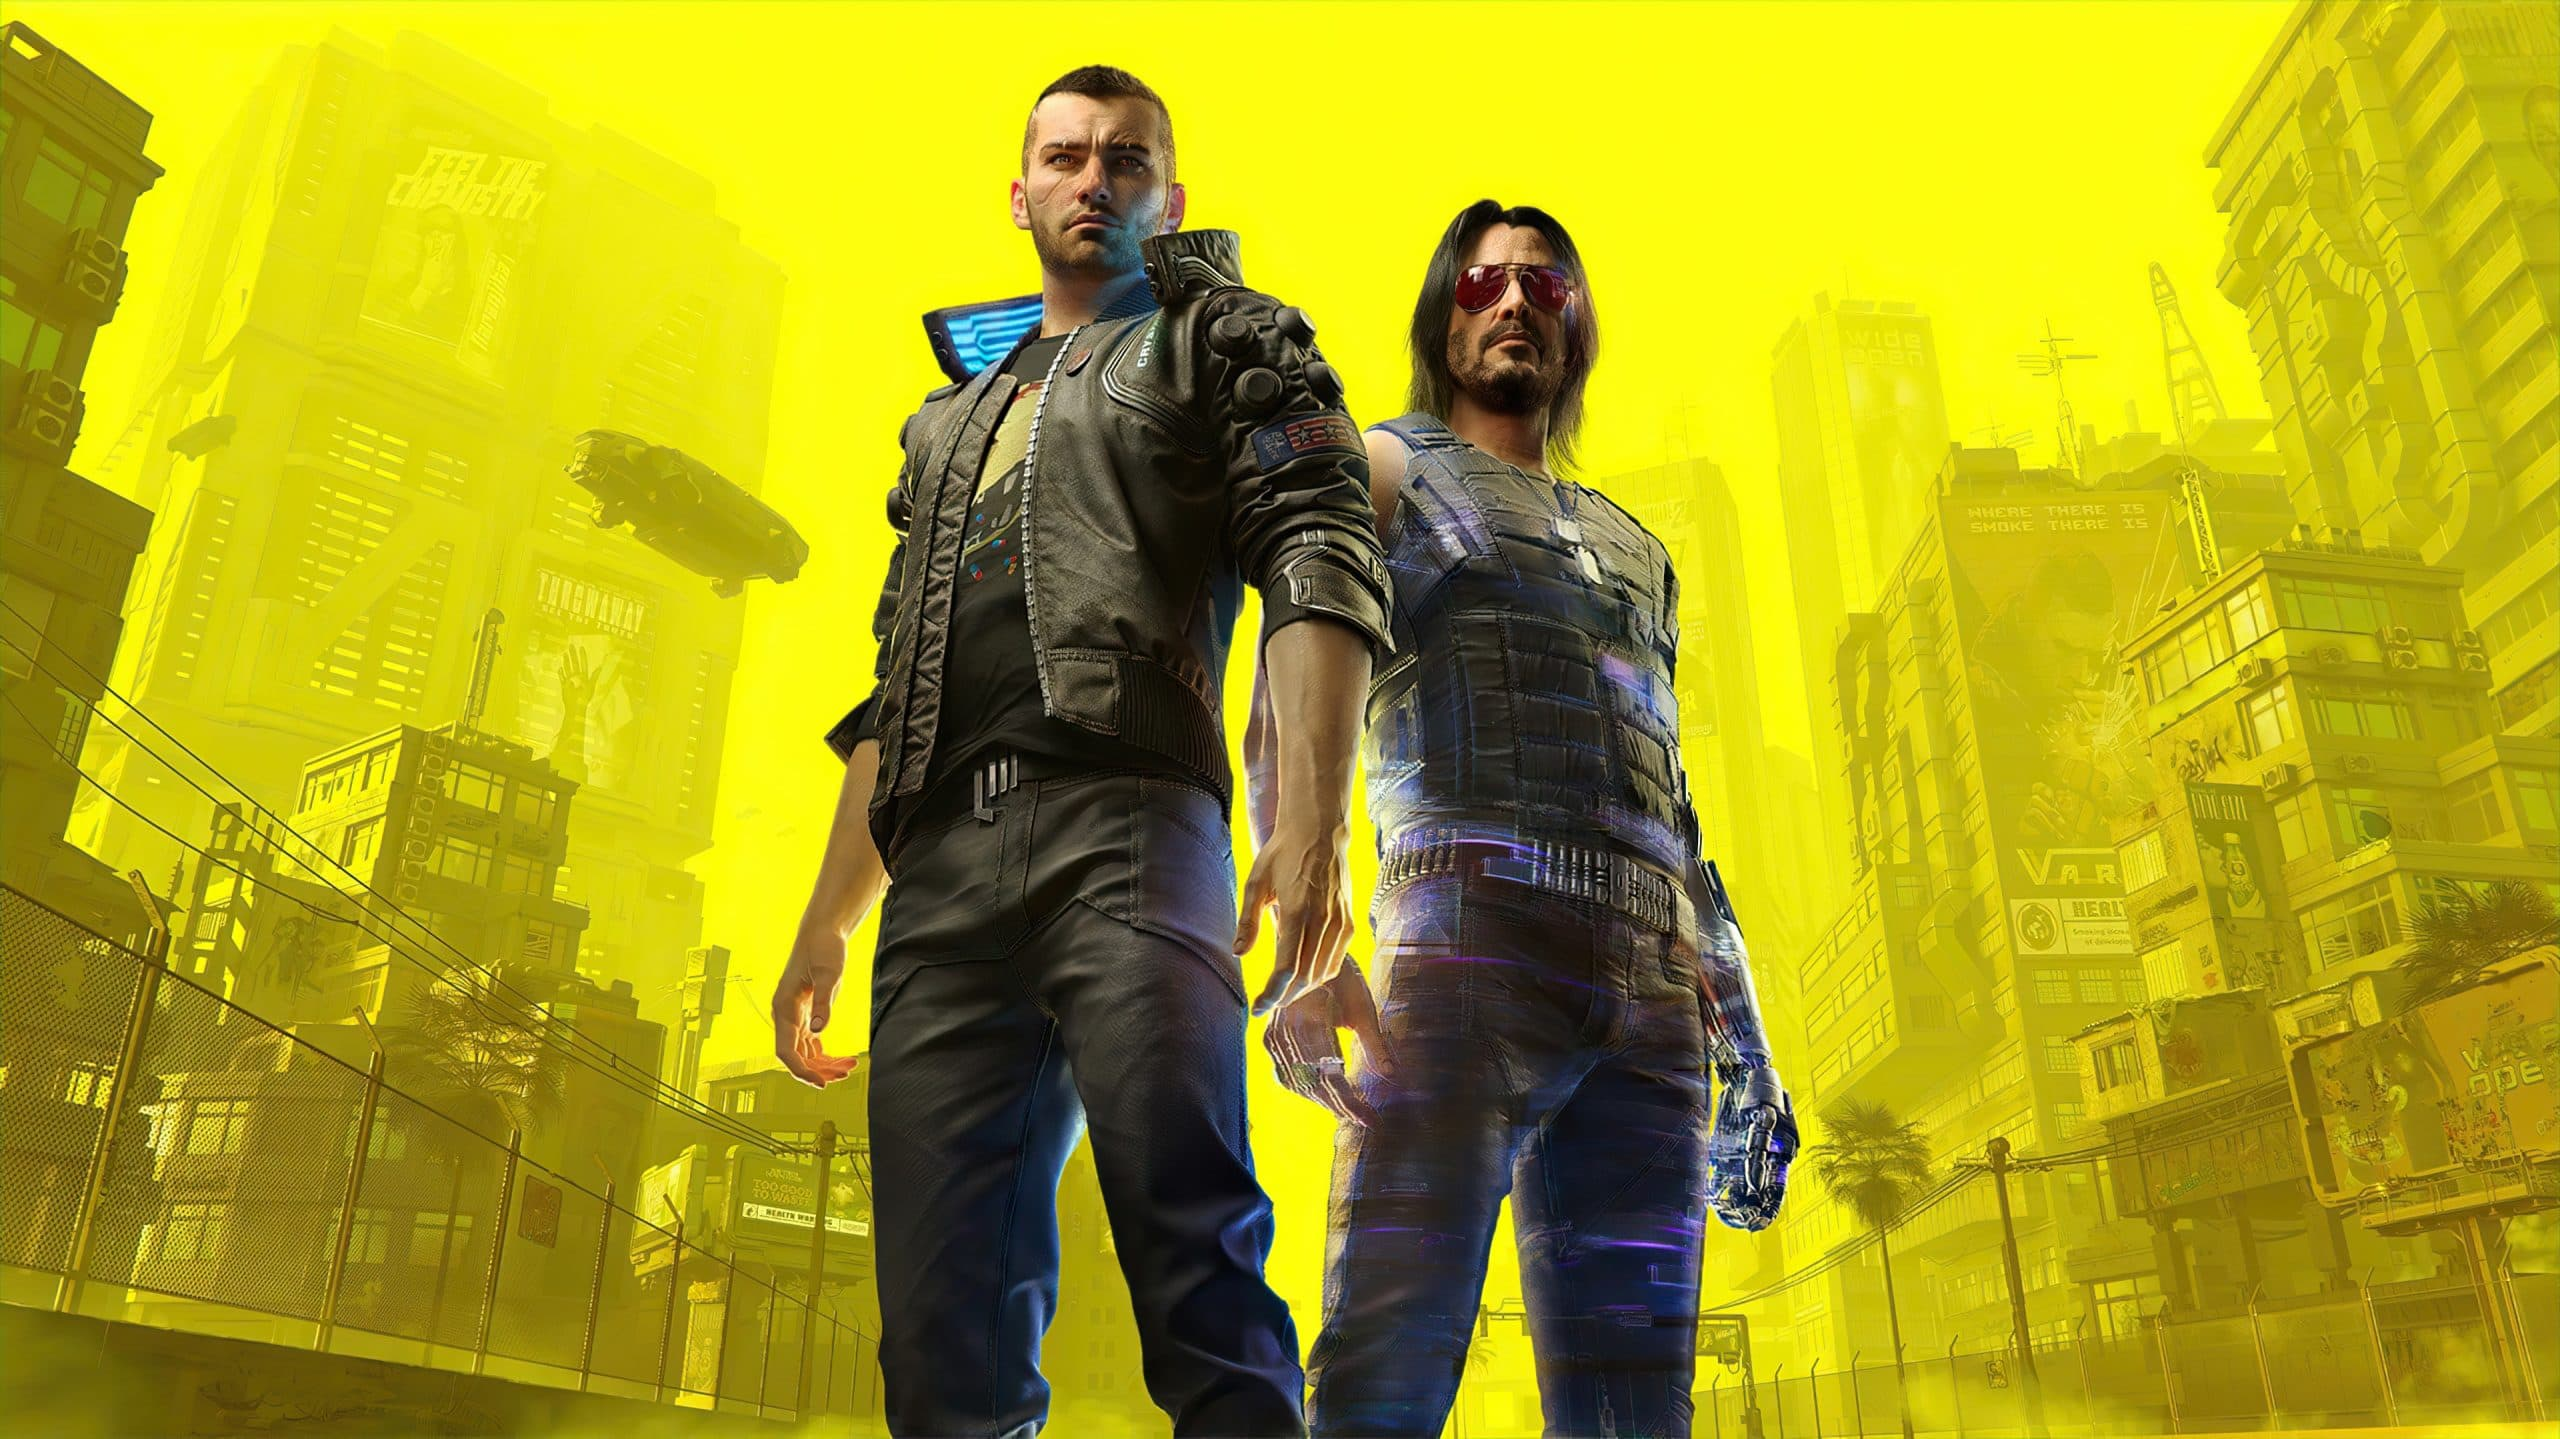 Cyberpunk 2077 bestselling game on Playstation Store